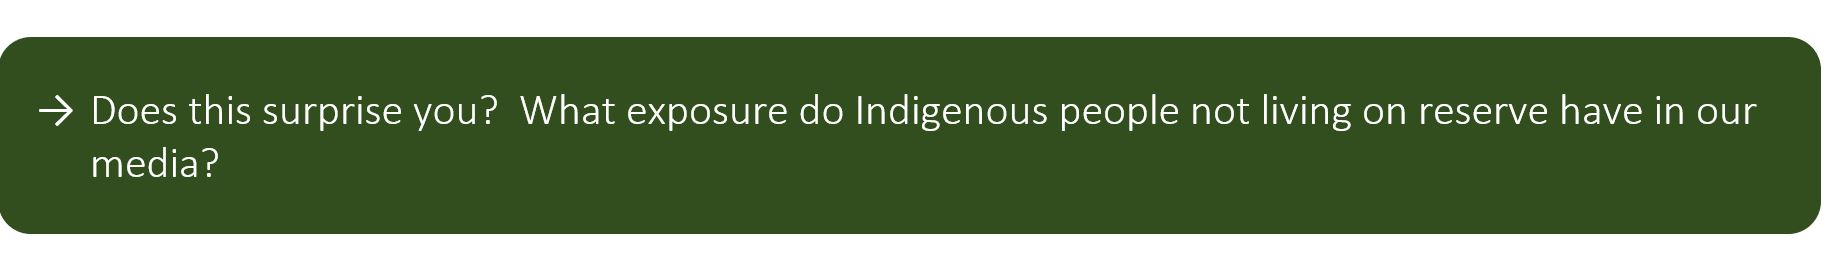 Does this surprise you? What exposure do Indigenous people not living on reserve have in our media?